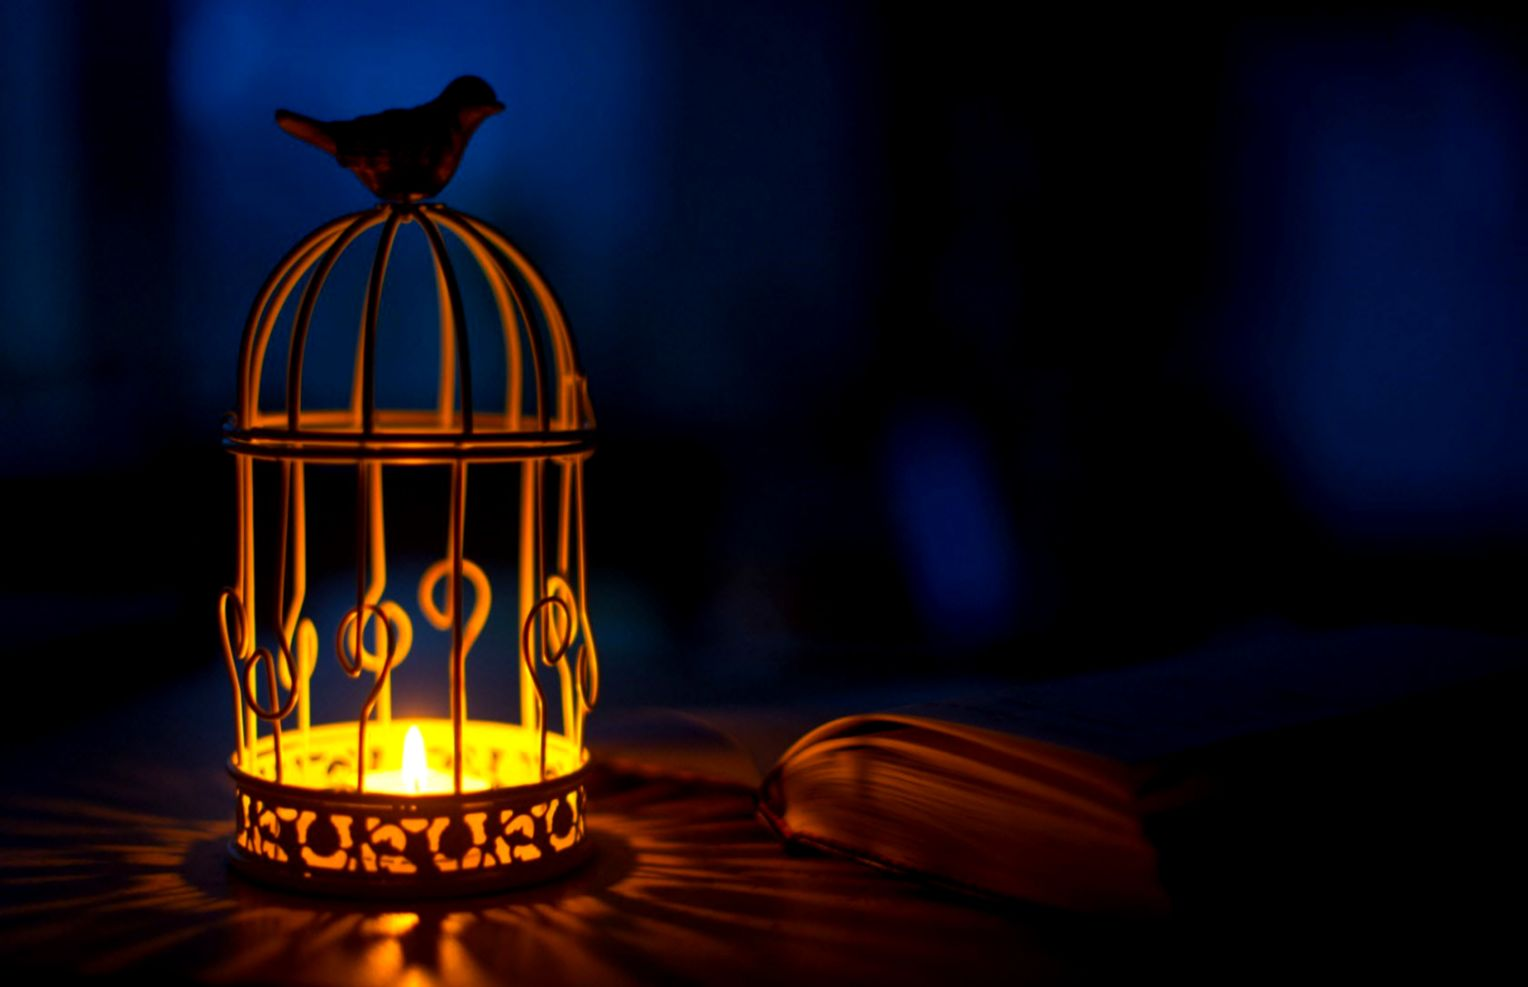 Wallpaper Of A Candle Holder That Looks Like A Bird Cage PaperPull